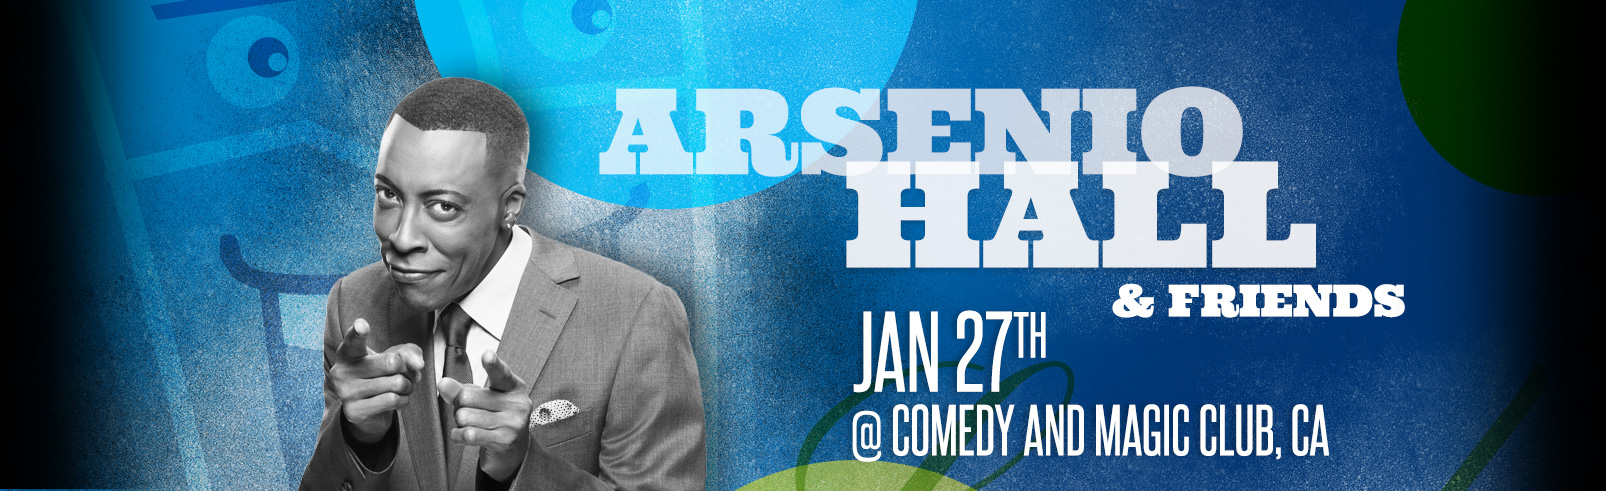 Arsenio Hall & Friends @ Comedy and Magic Club